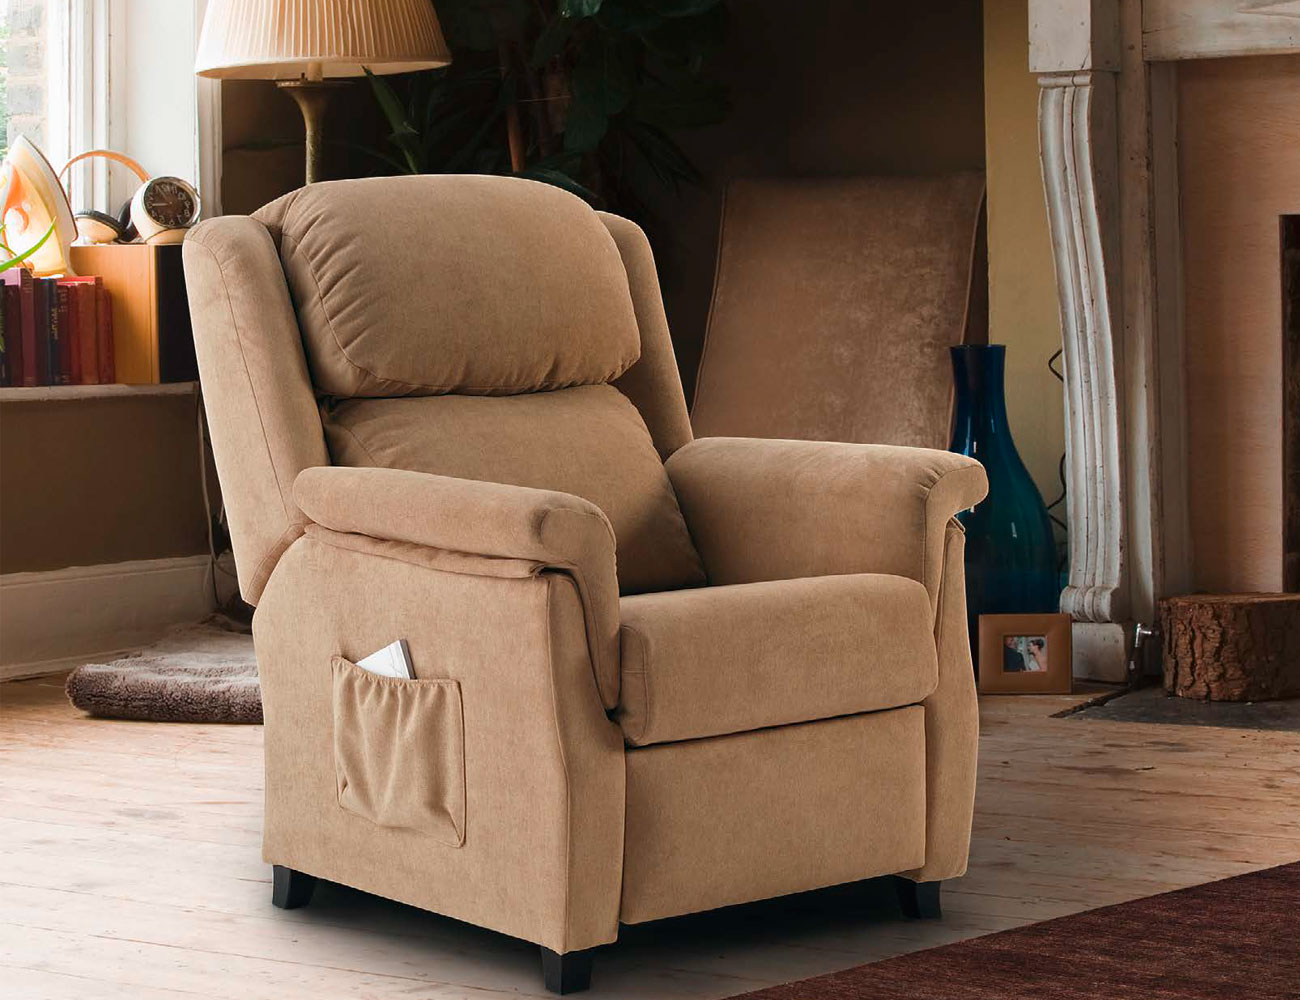 Sillon relax manual bianca 114